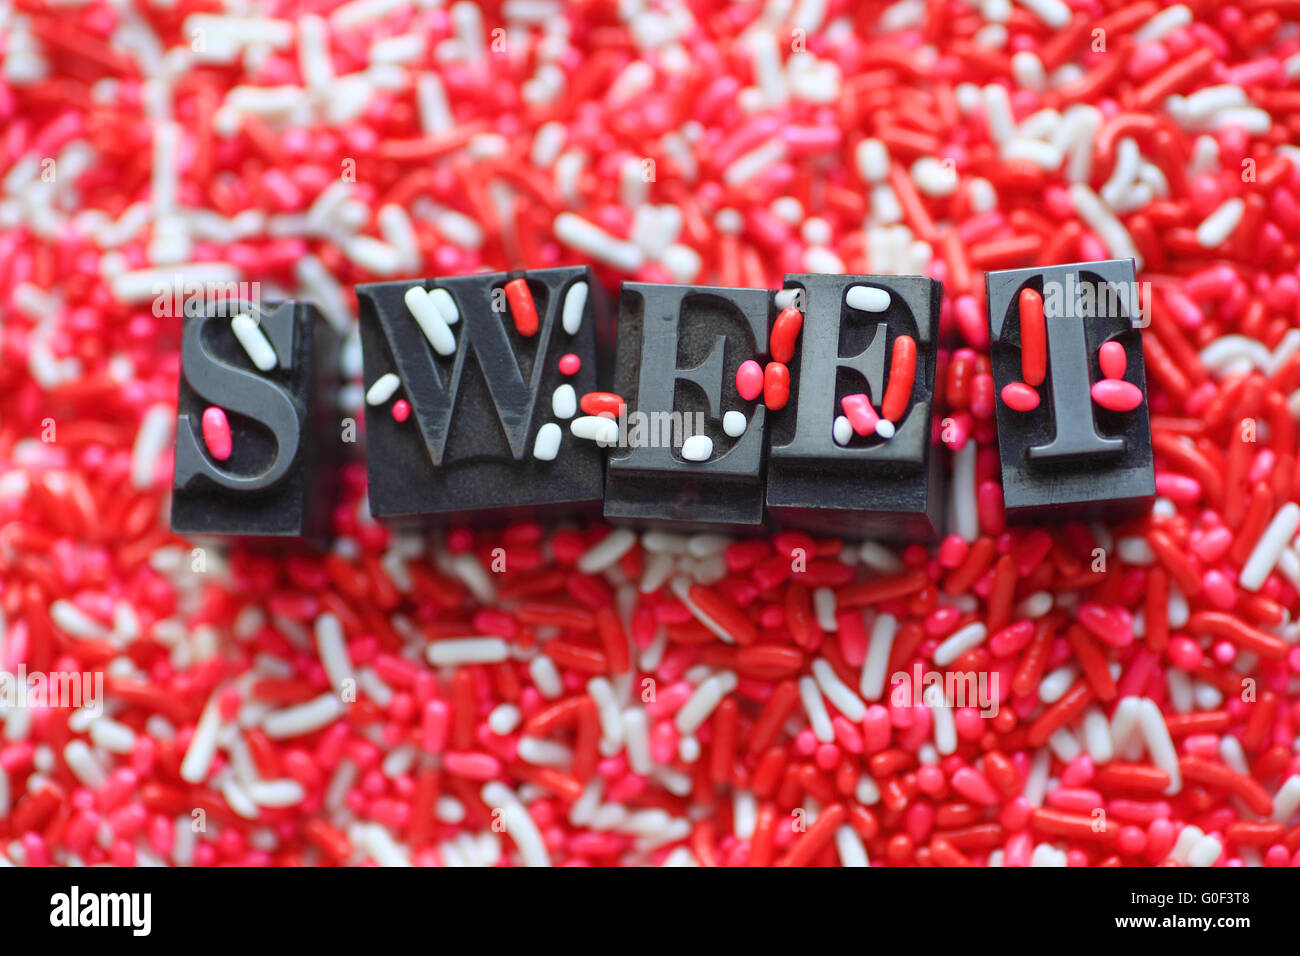 The word 'sweet' in metal type on a pink and white candy sprinkles background - Stock Image